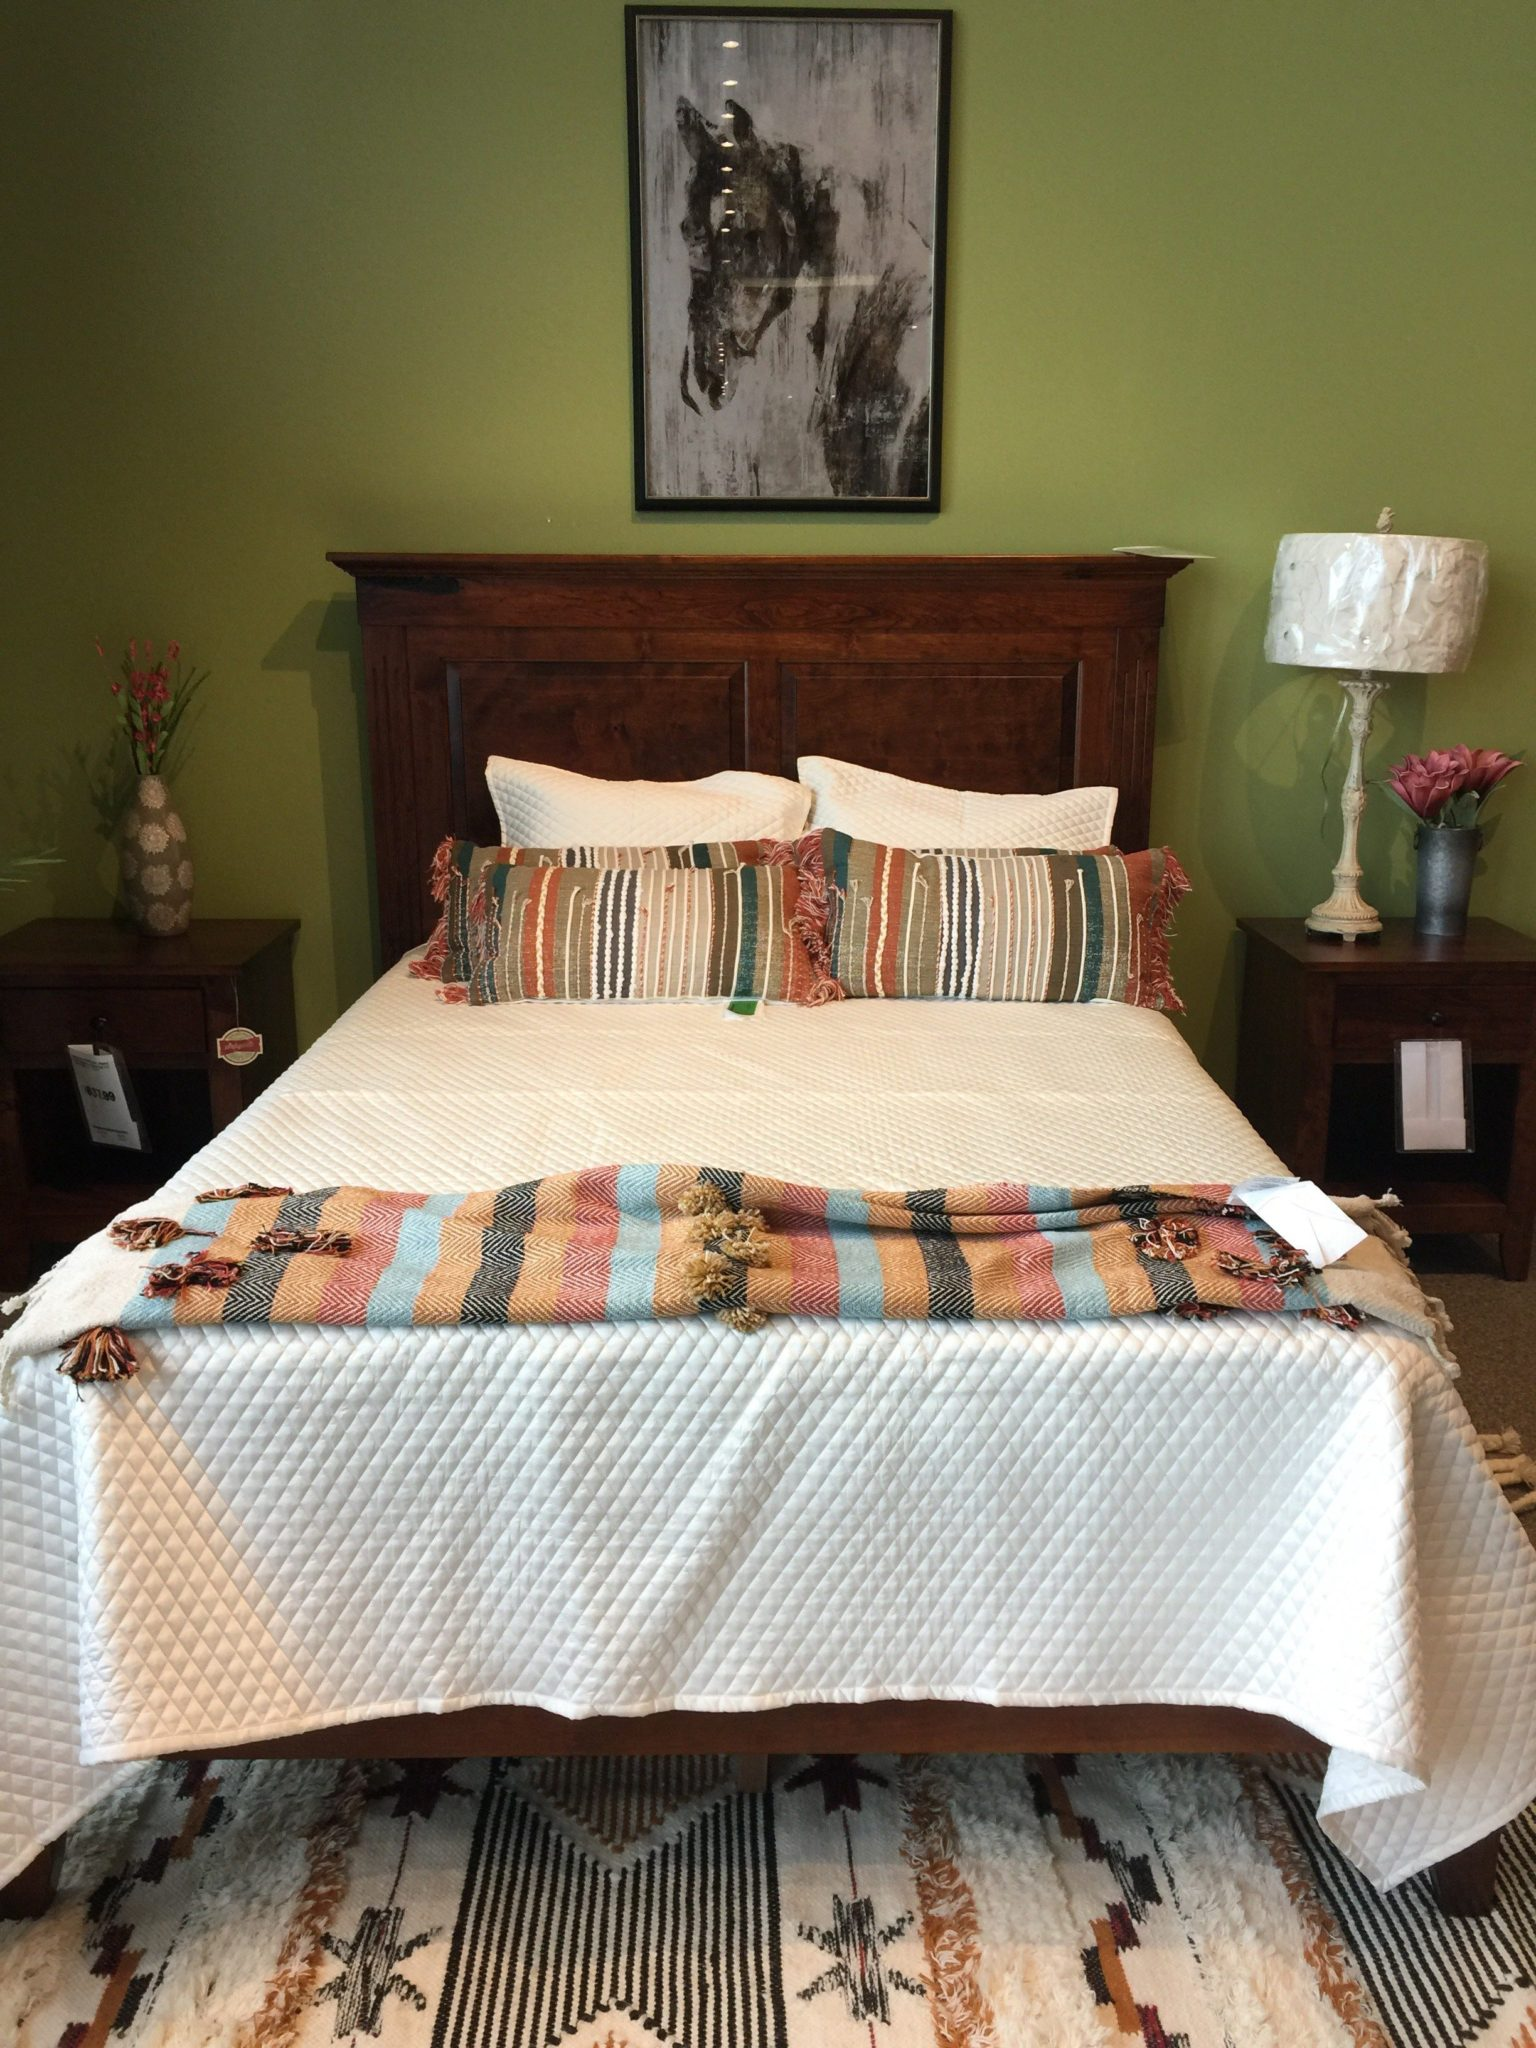 Shenandoah Deluxe Headboard Bed with Michael's Stain